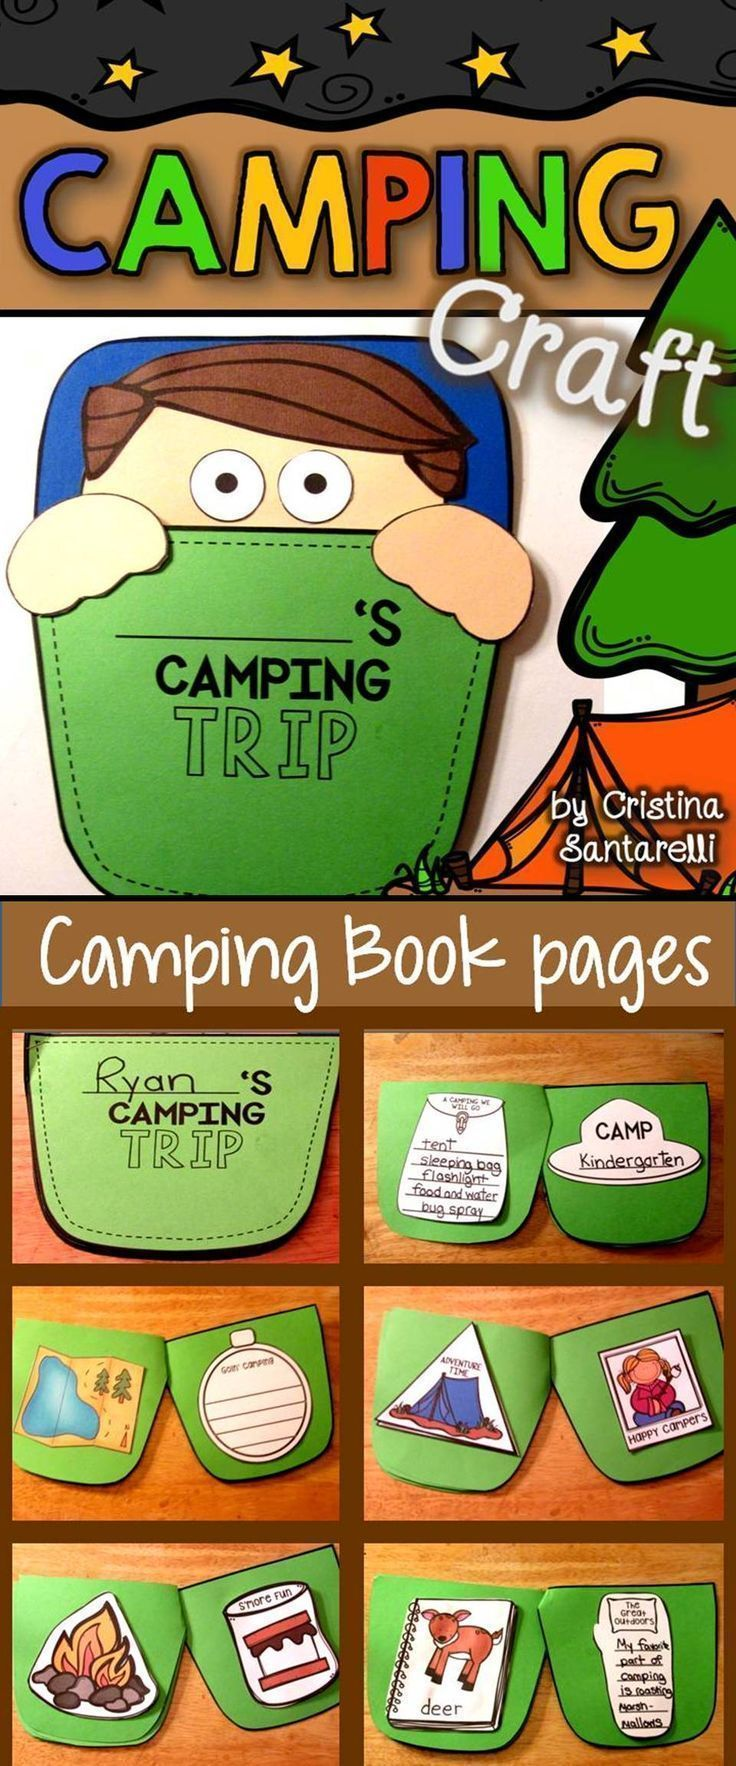 41 best Camping images on Pinterest | Camping theme crafts ...